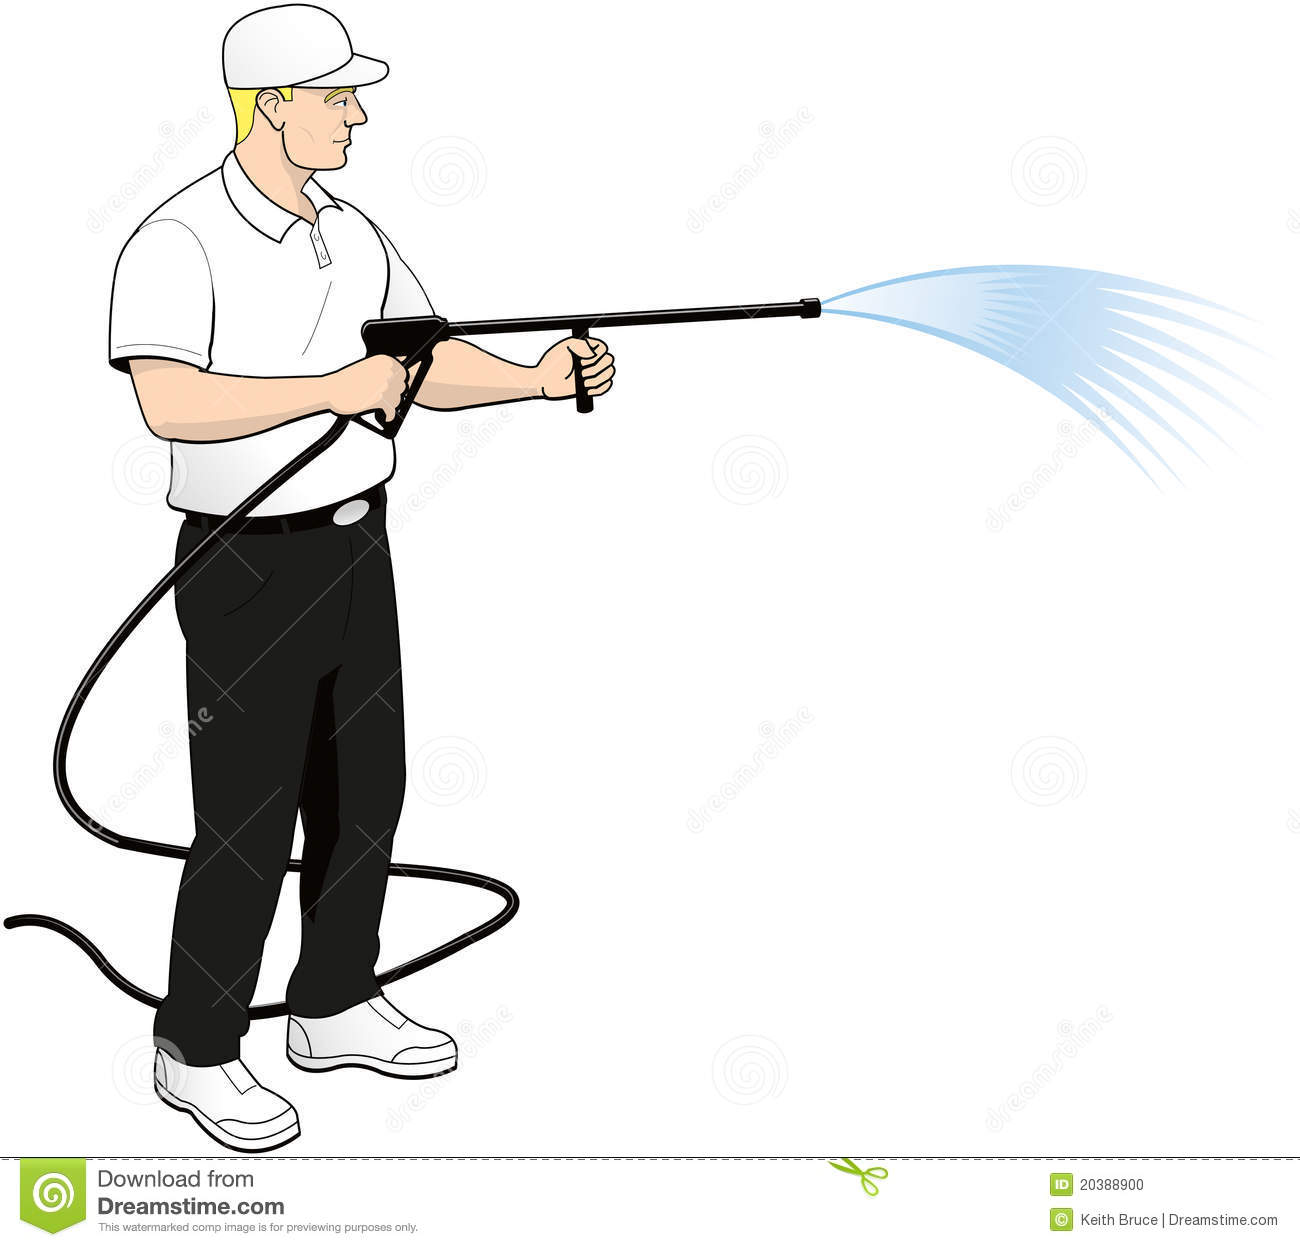 Pressure Power Soft Washing Clip Art